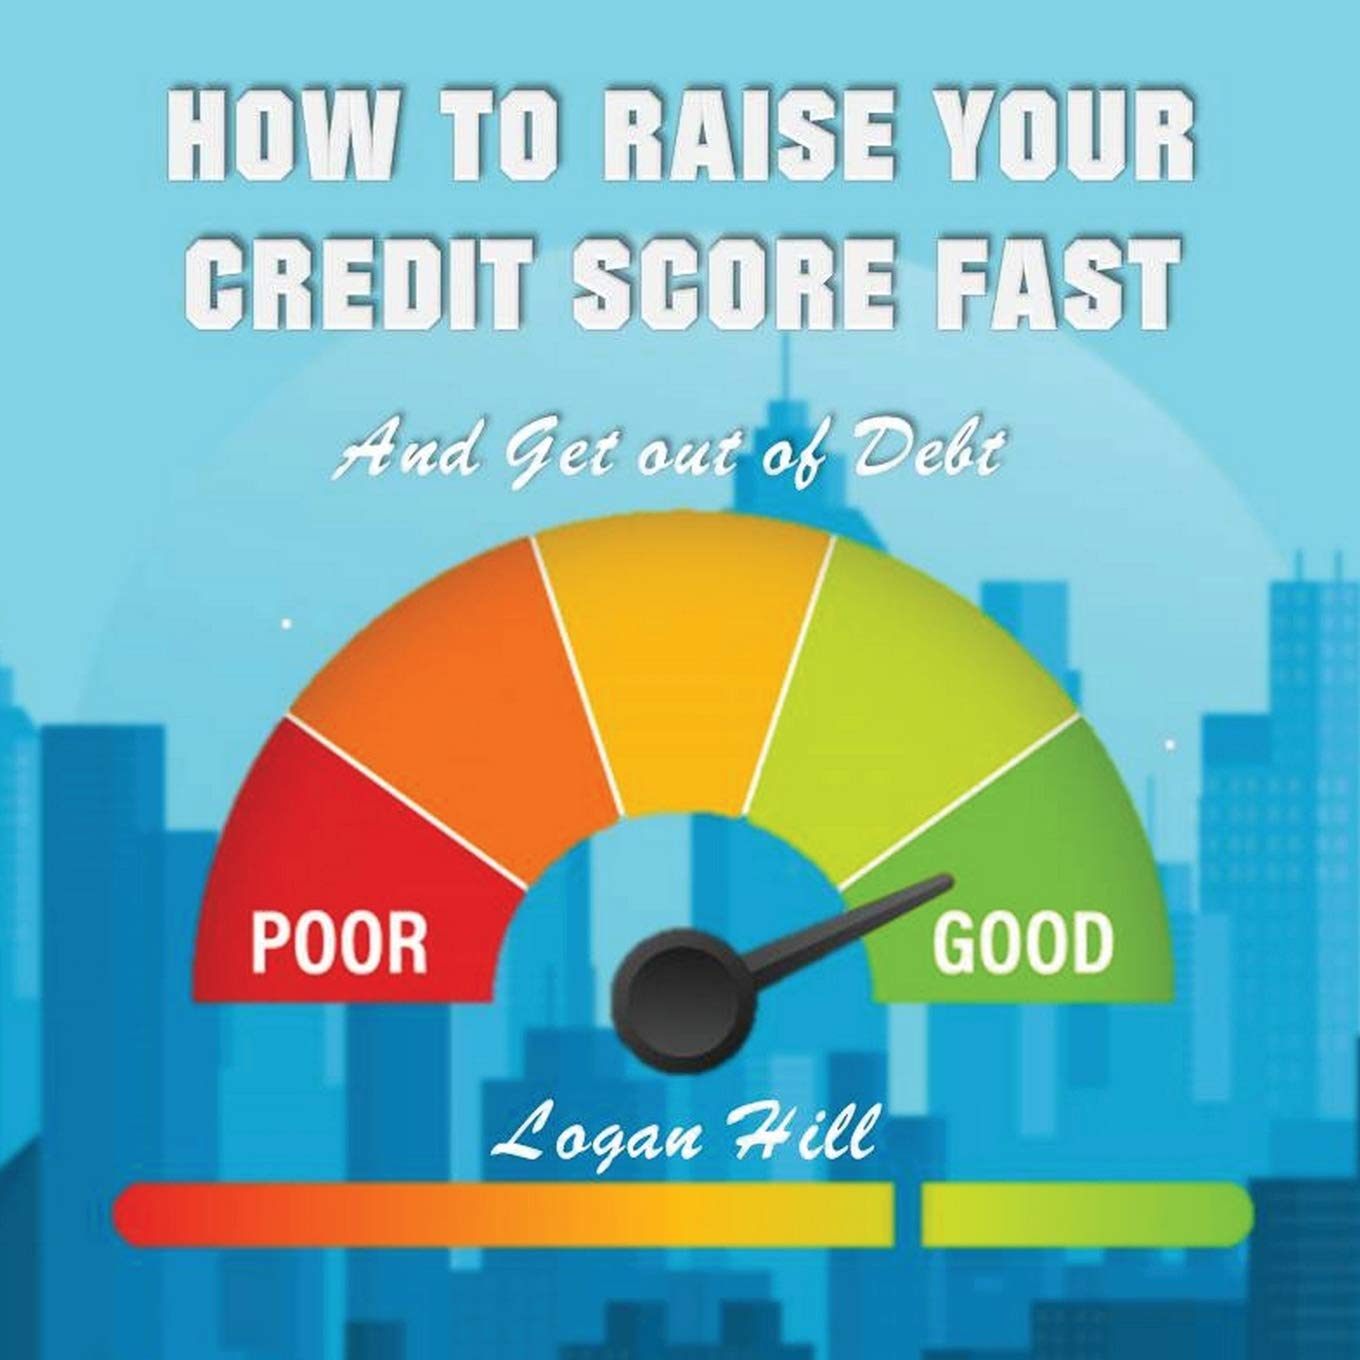 How to Raise your Credit Score Fast And Get out of Debt: Hill